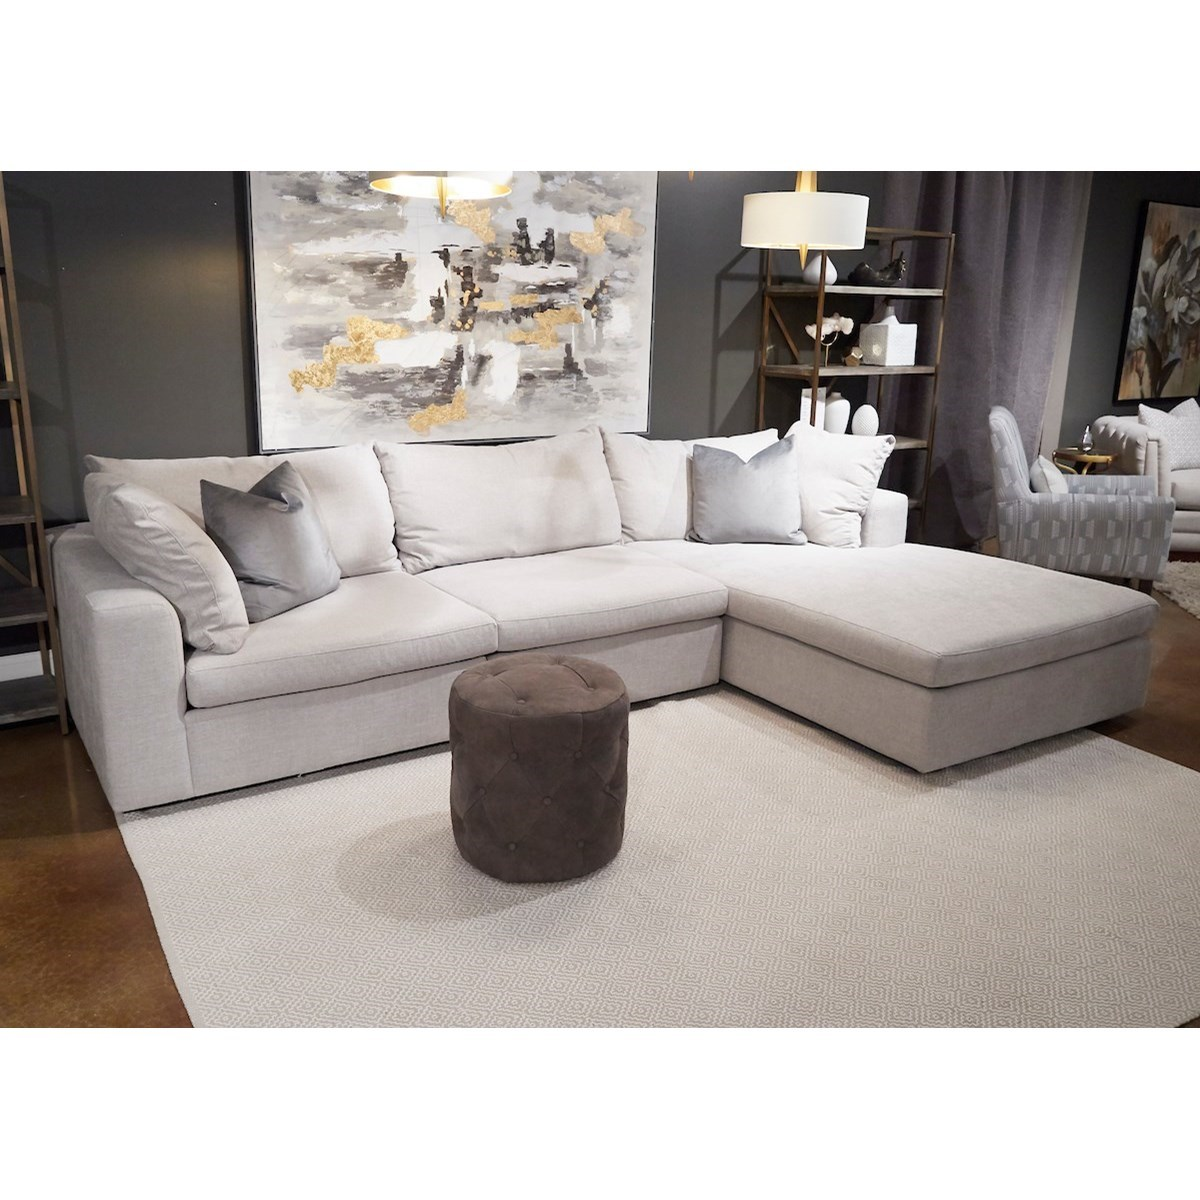 Arnell 3-Seat Sectional Sofa w/ RAF Chaise by Klaussner at H.L. Stephens